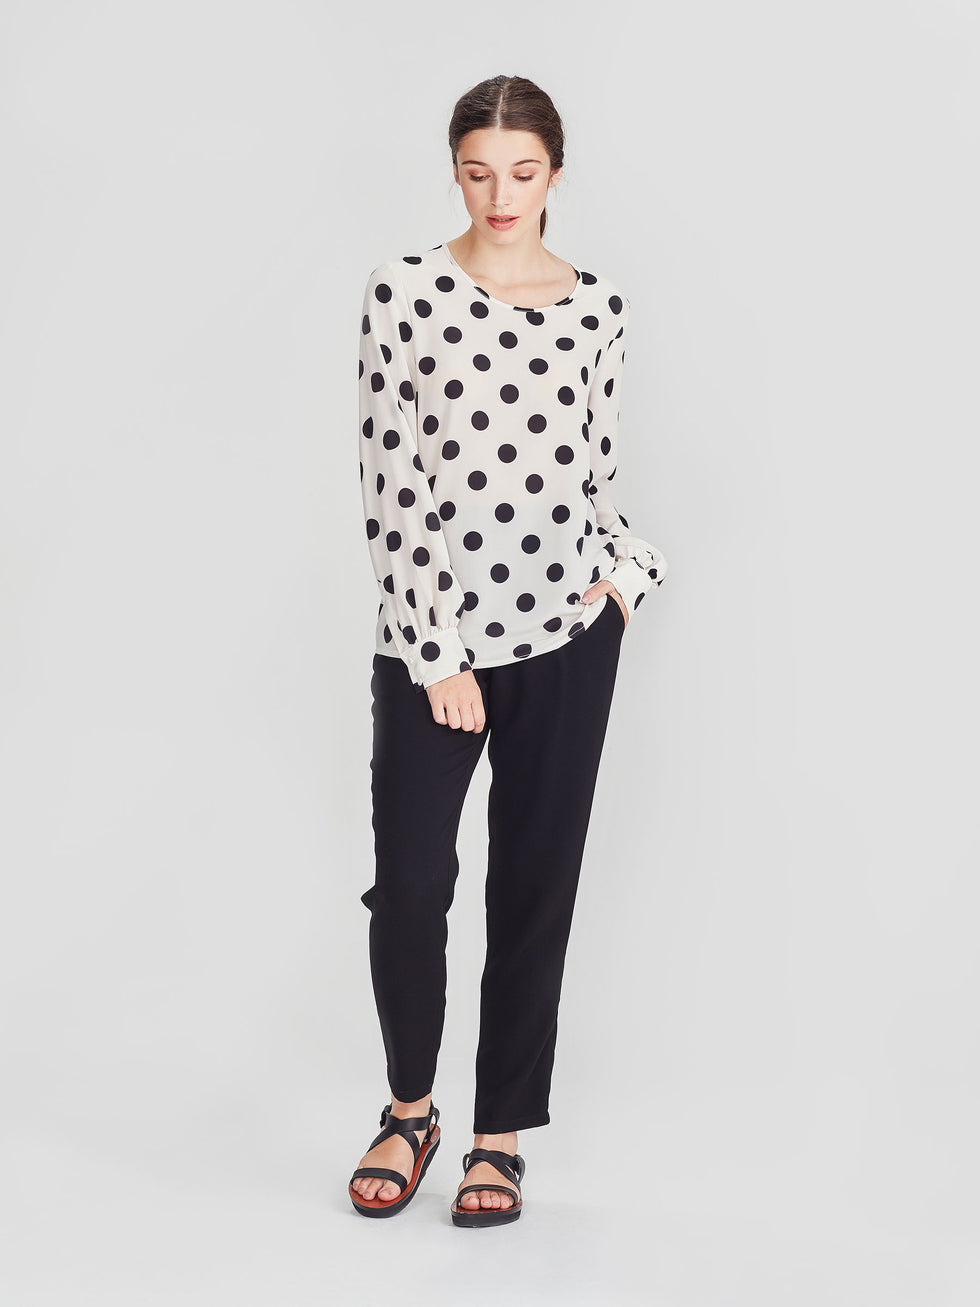 Lottie Shirt (Polka Silk) Chalk/Black